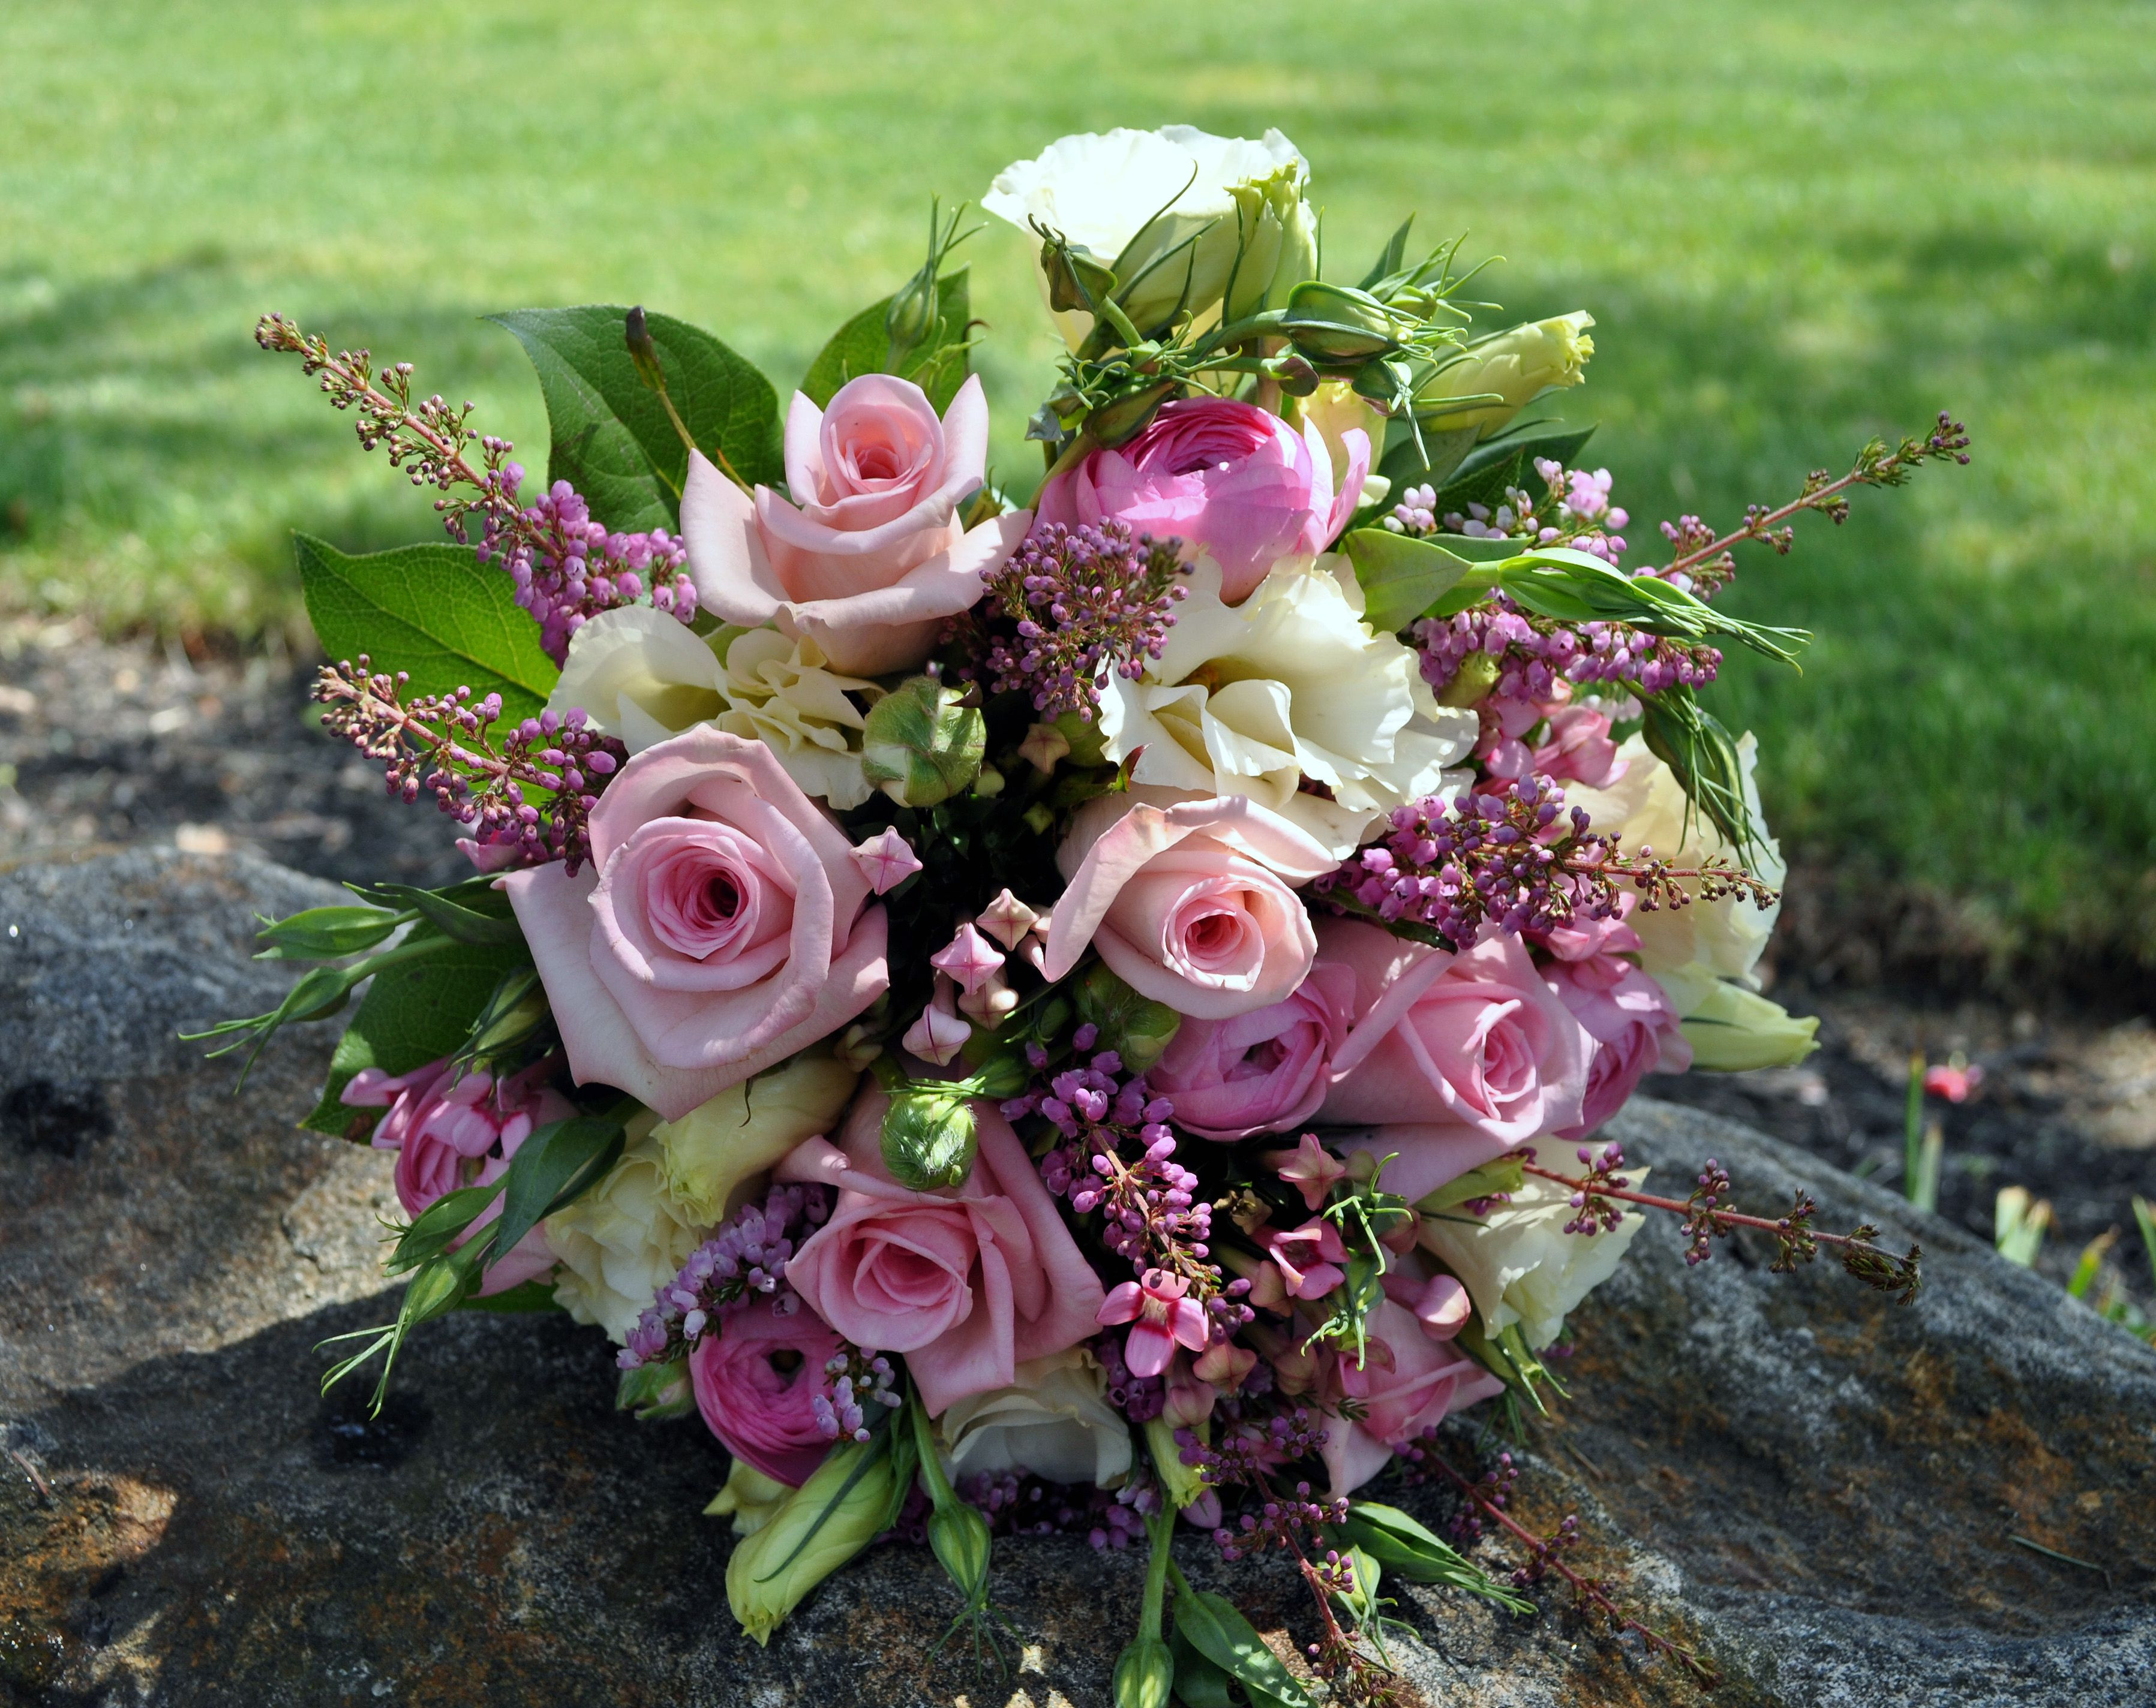 Bouquet with pink roses heather lisianthus ranunculus and bouvardia